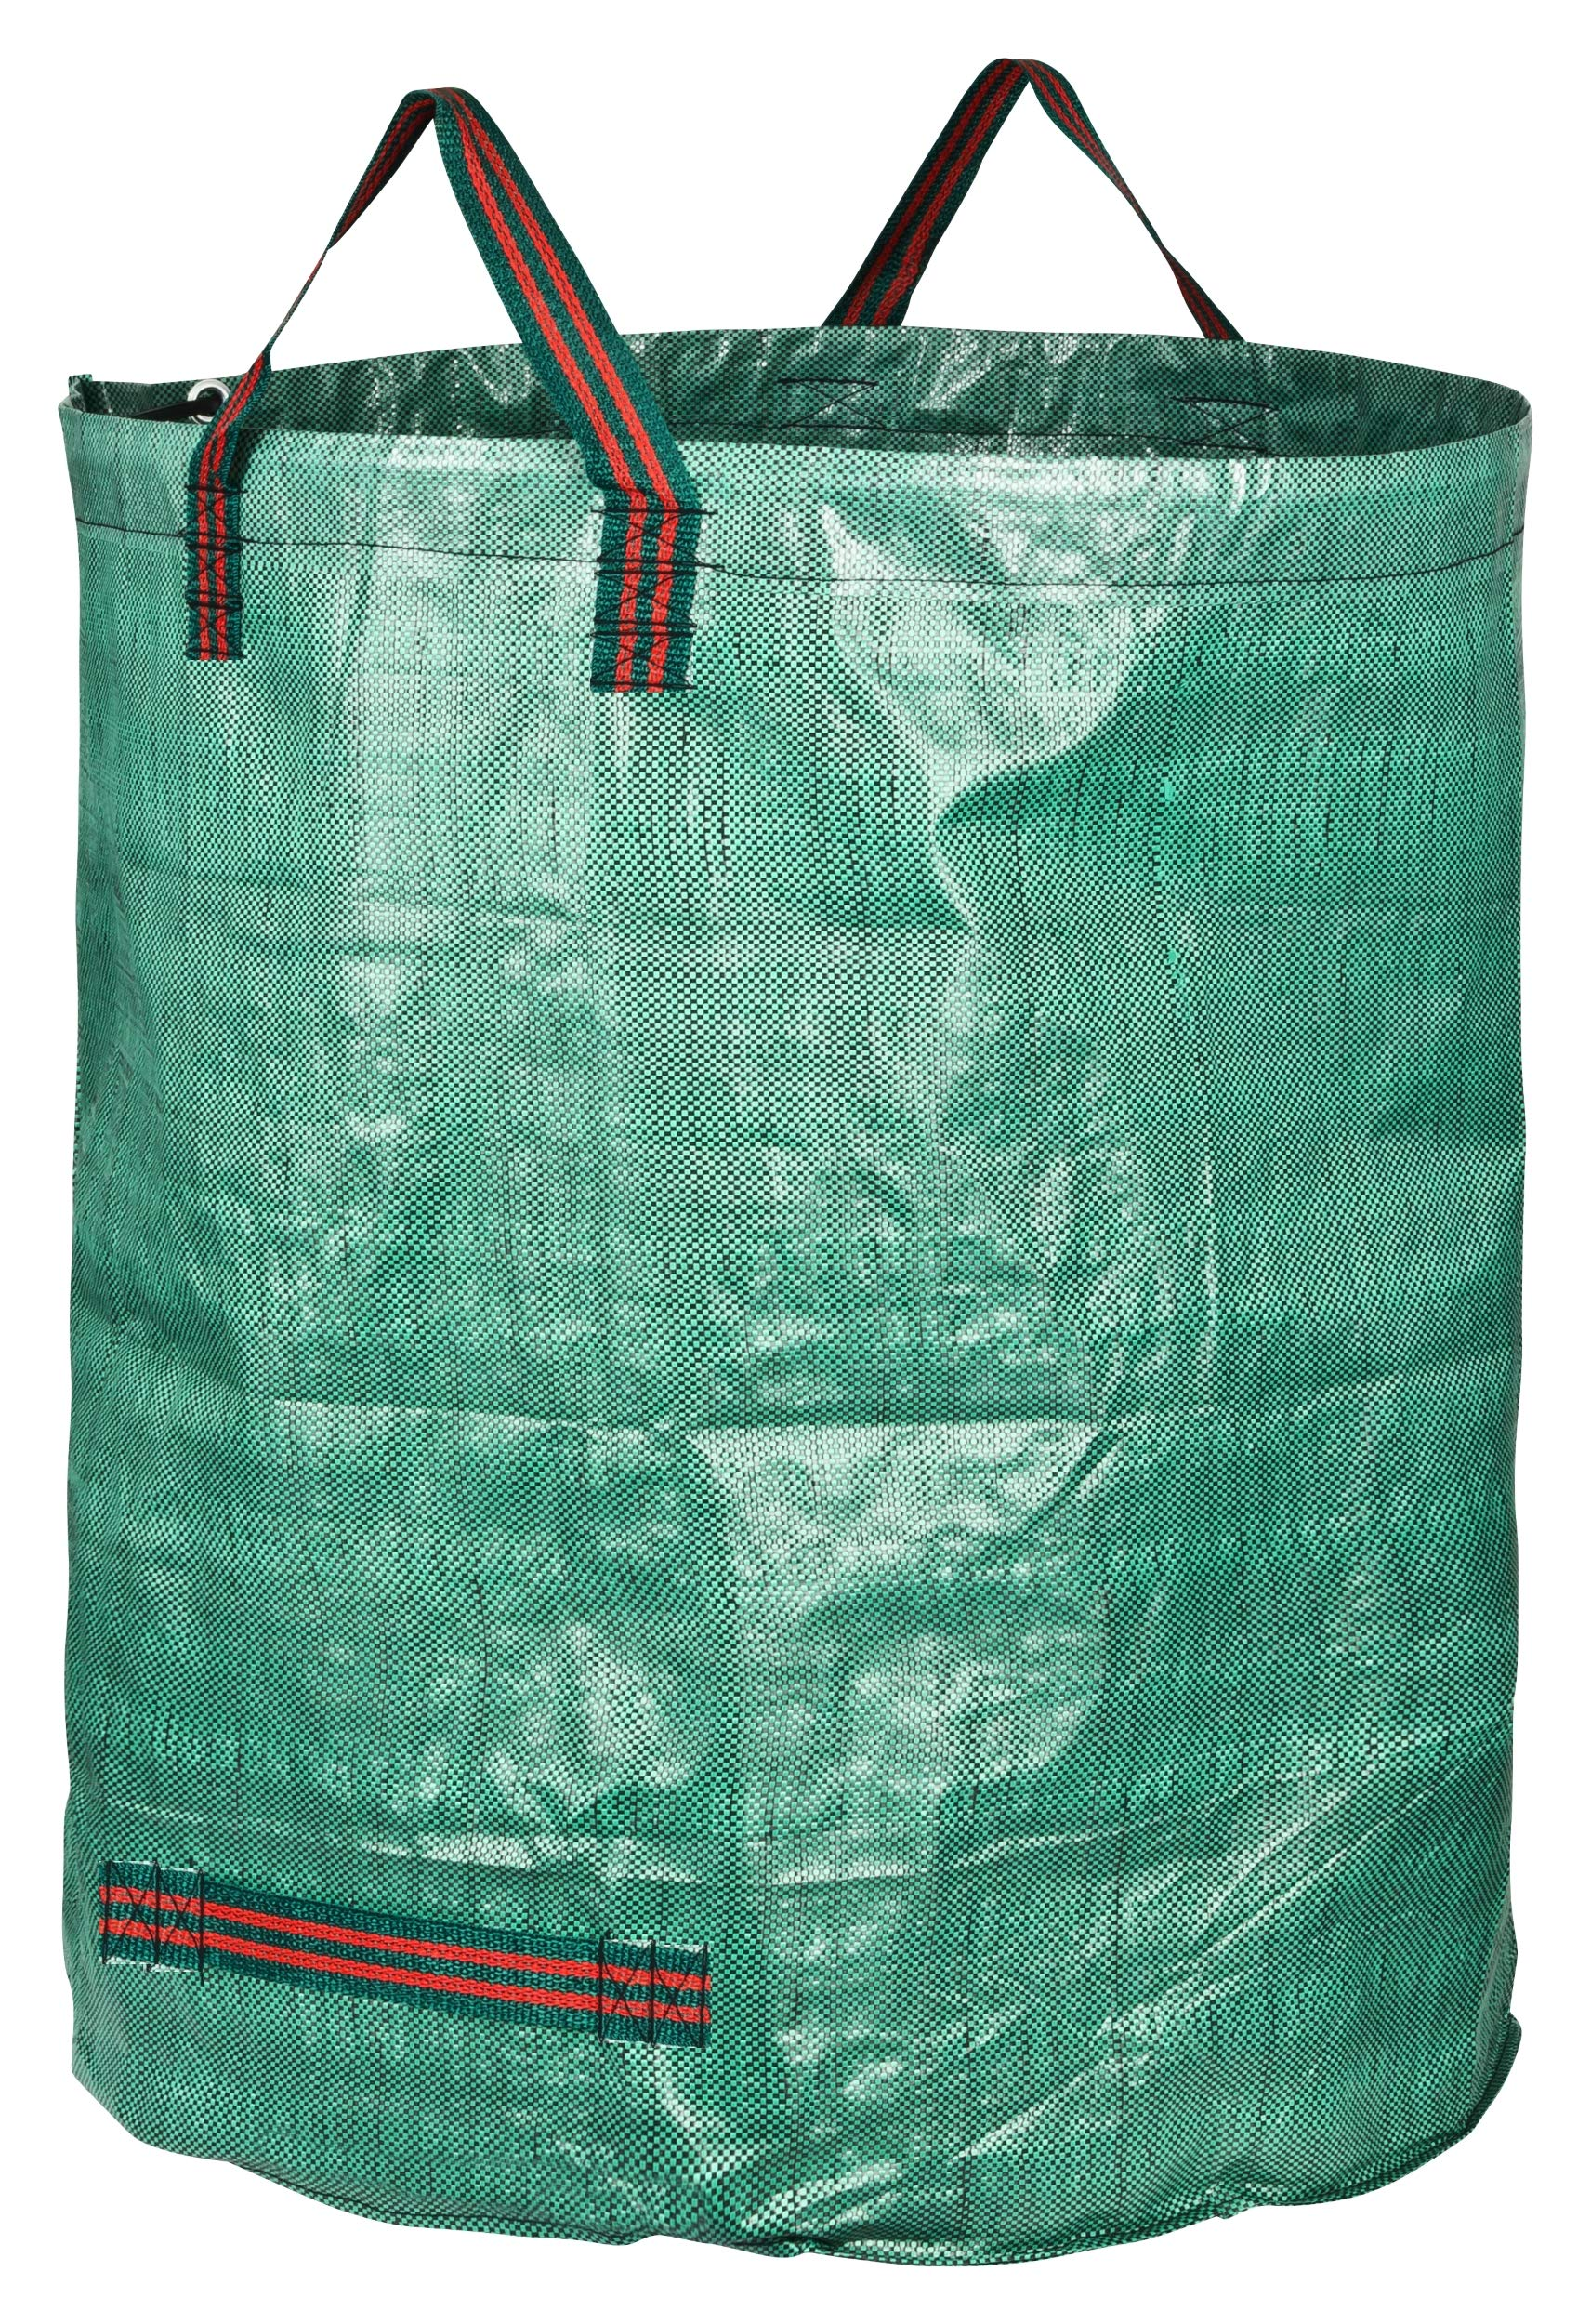 GardenMate 6-Pack 80 Gallons Professional Reusable Garden Waste Bags (H33, D26 inches) - Yard Waste Bags with Double Bottom by GardenMate